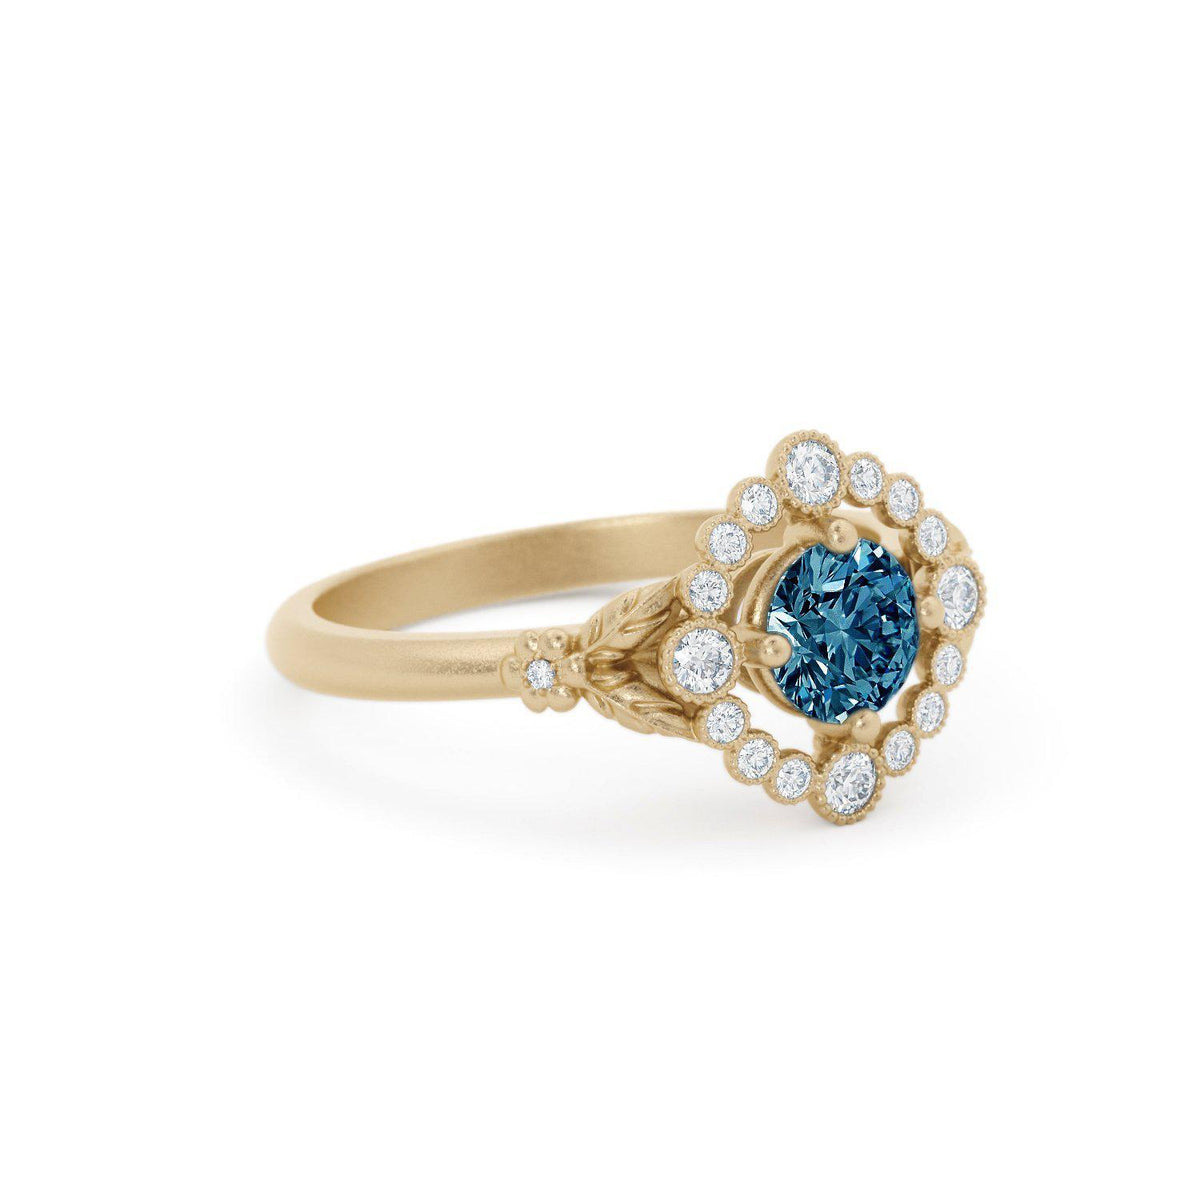 Scarlett Montana Sapphire Ring with Diamond Halo Yellow Gold